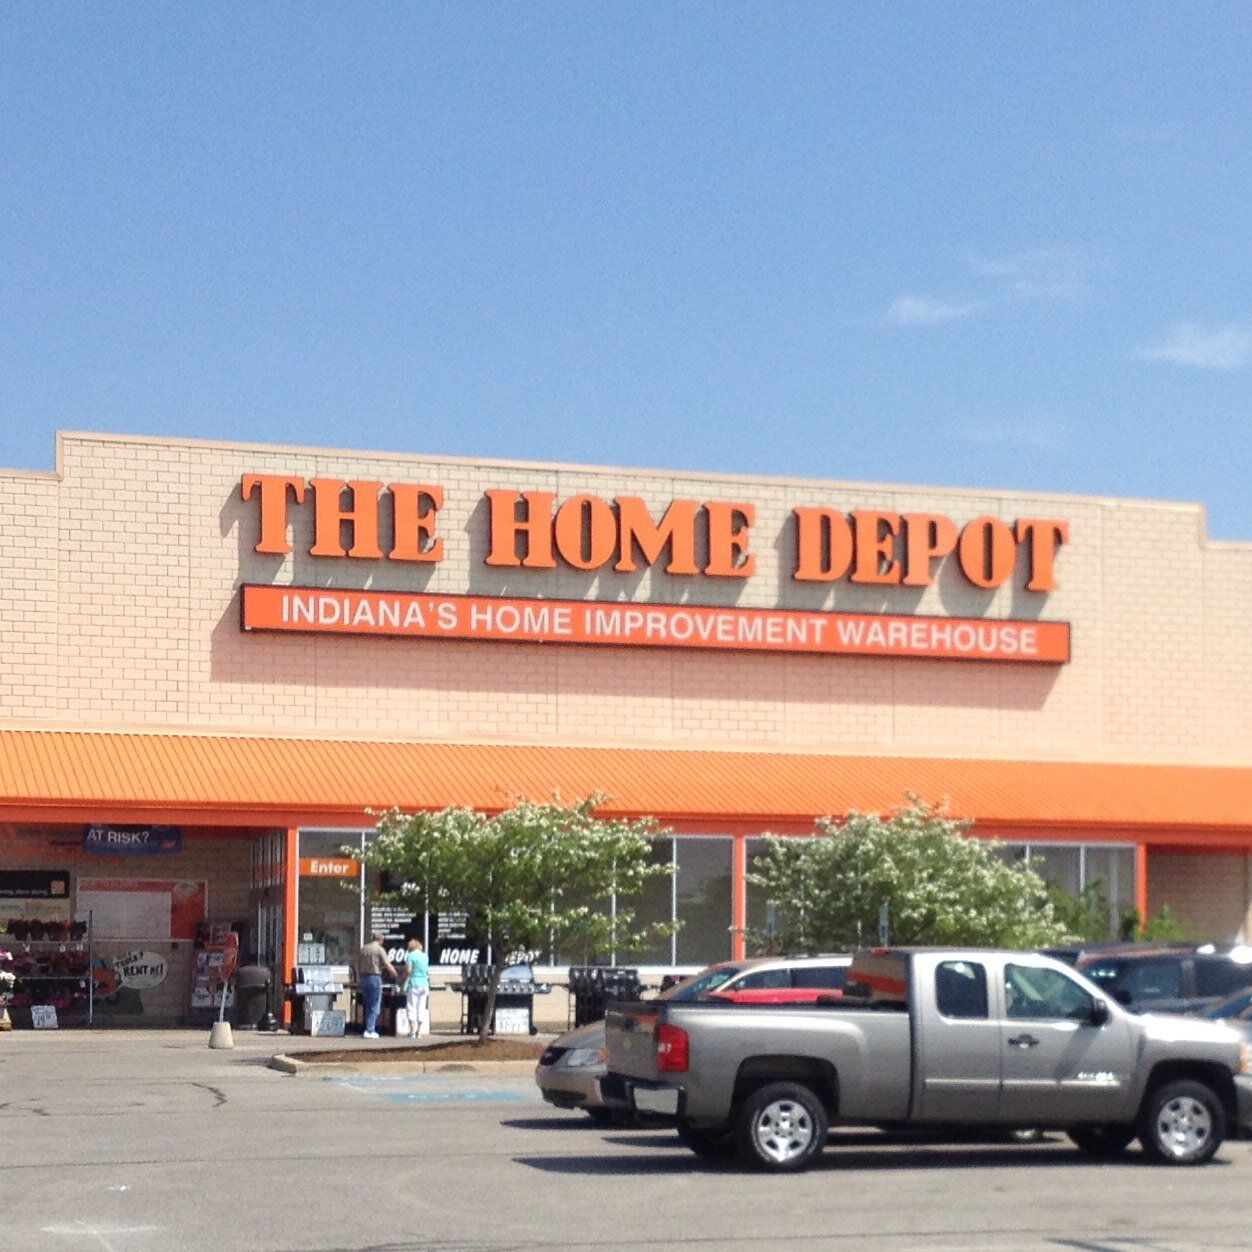 Southport Home Depot (@HDsouthportIN) | Twitter